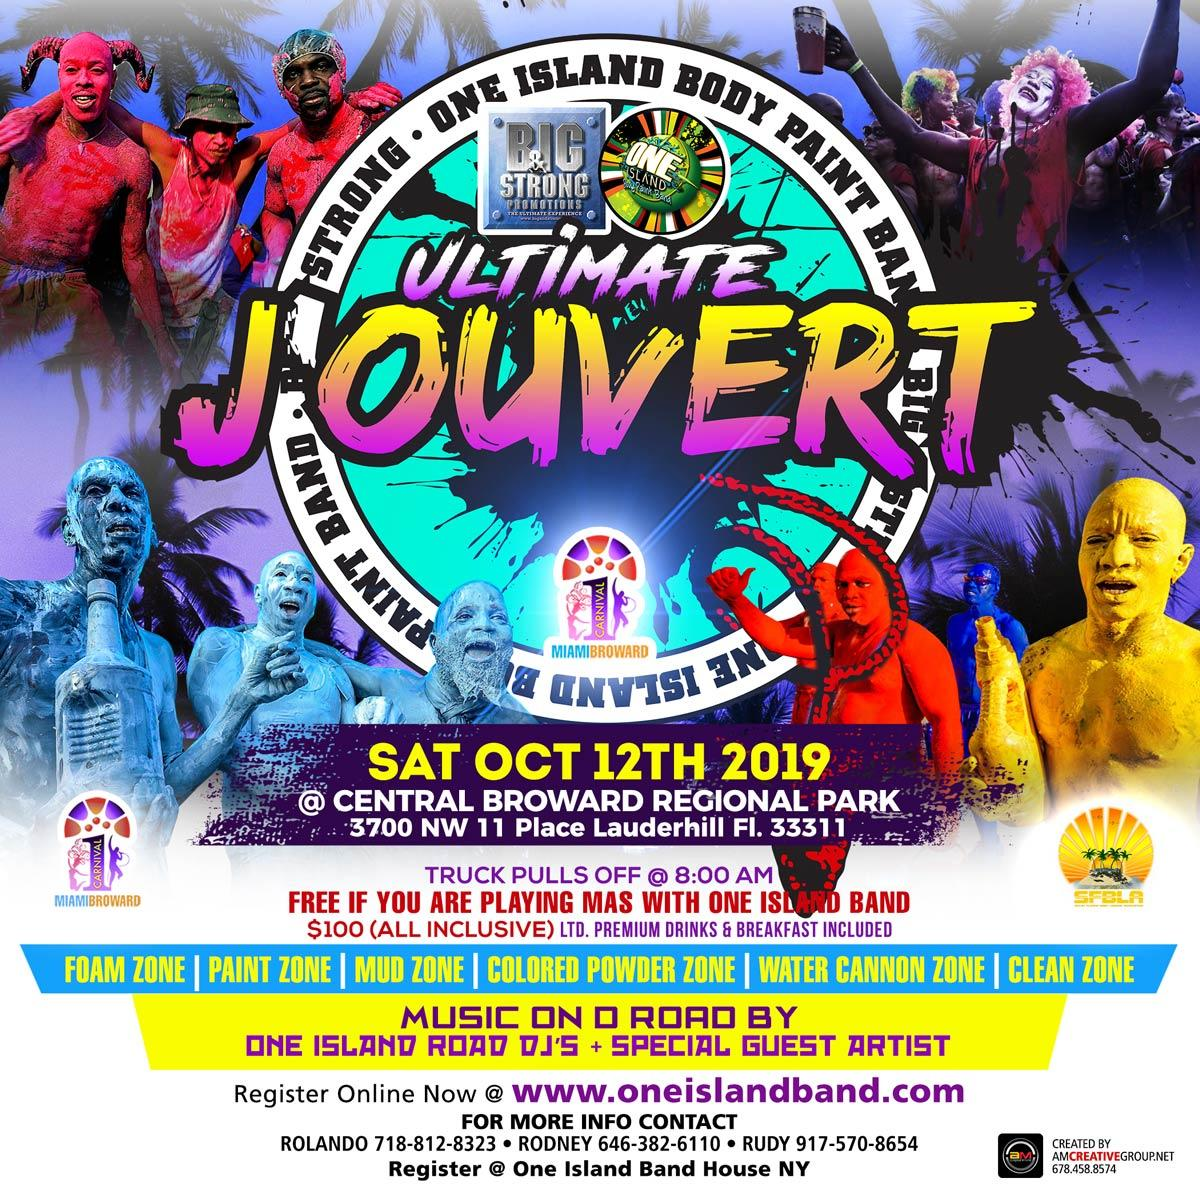 Ultimate J'ouvert flyer or graphic.